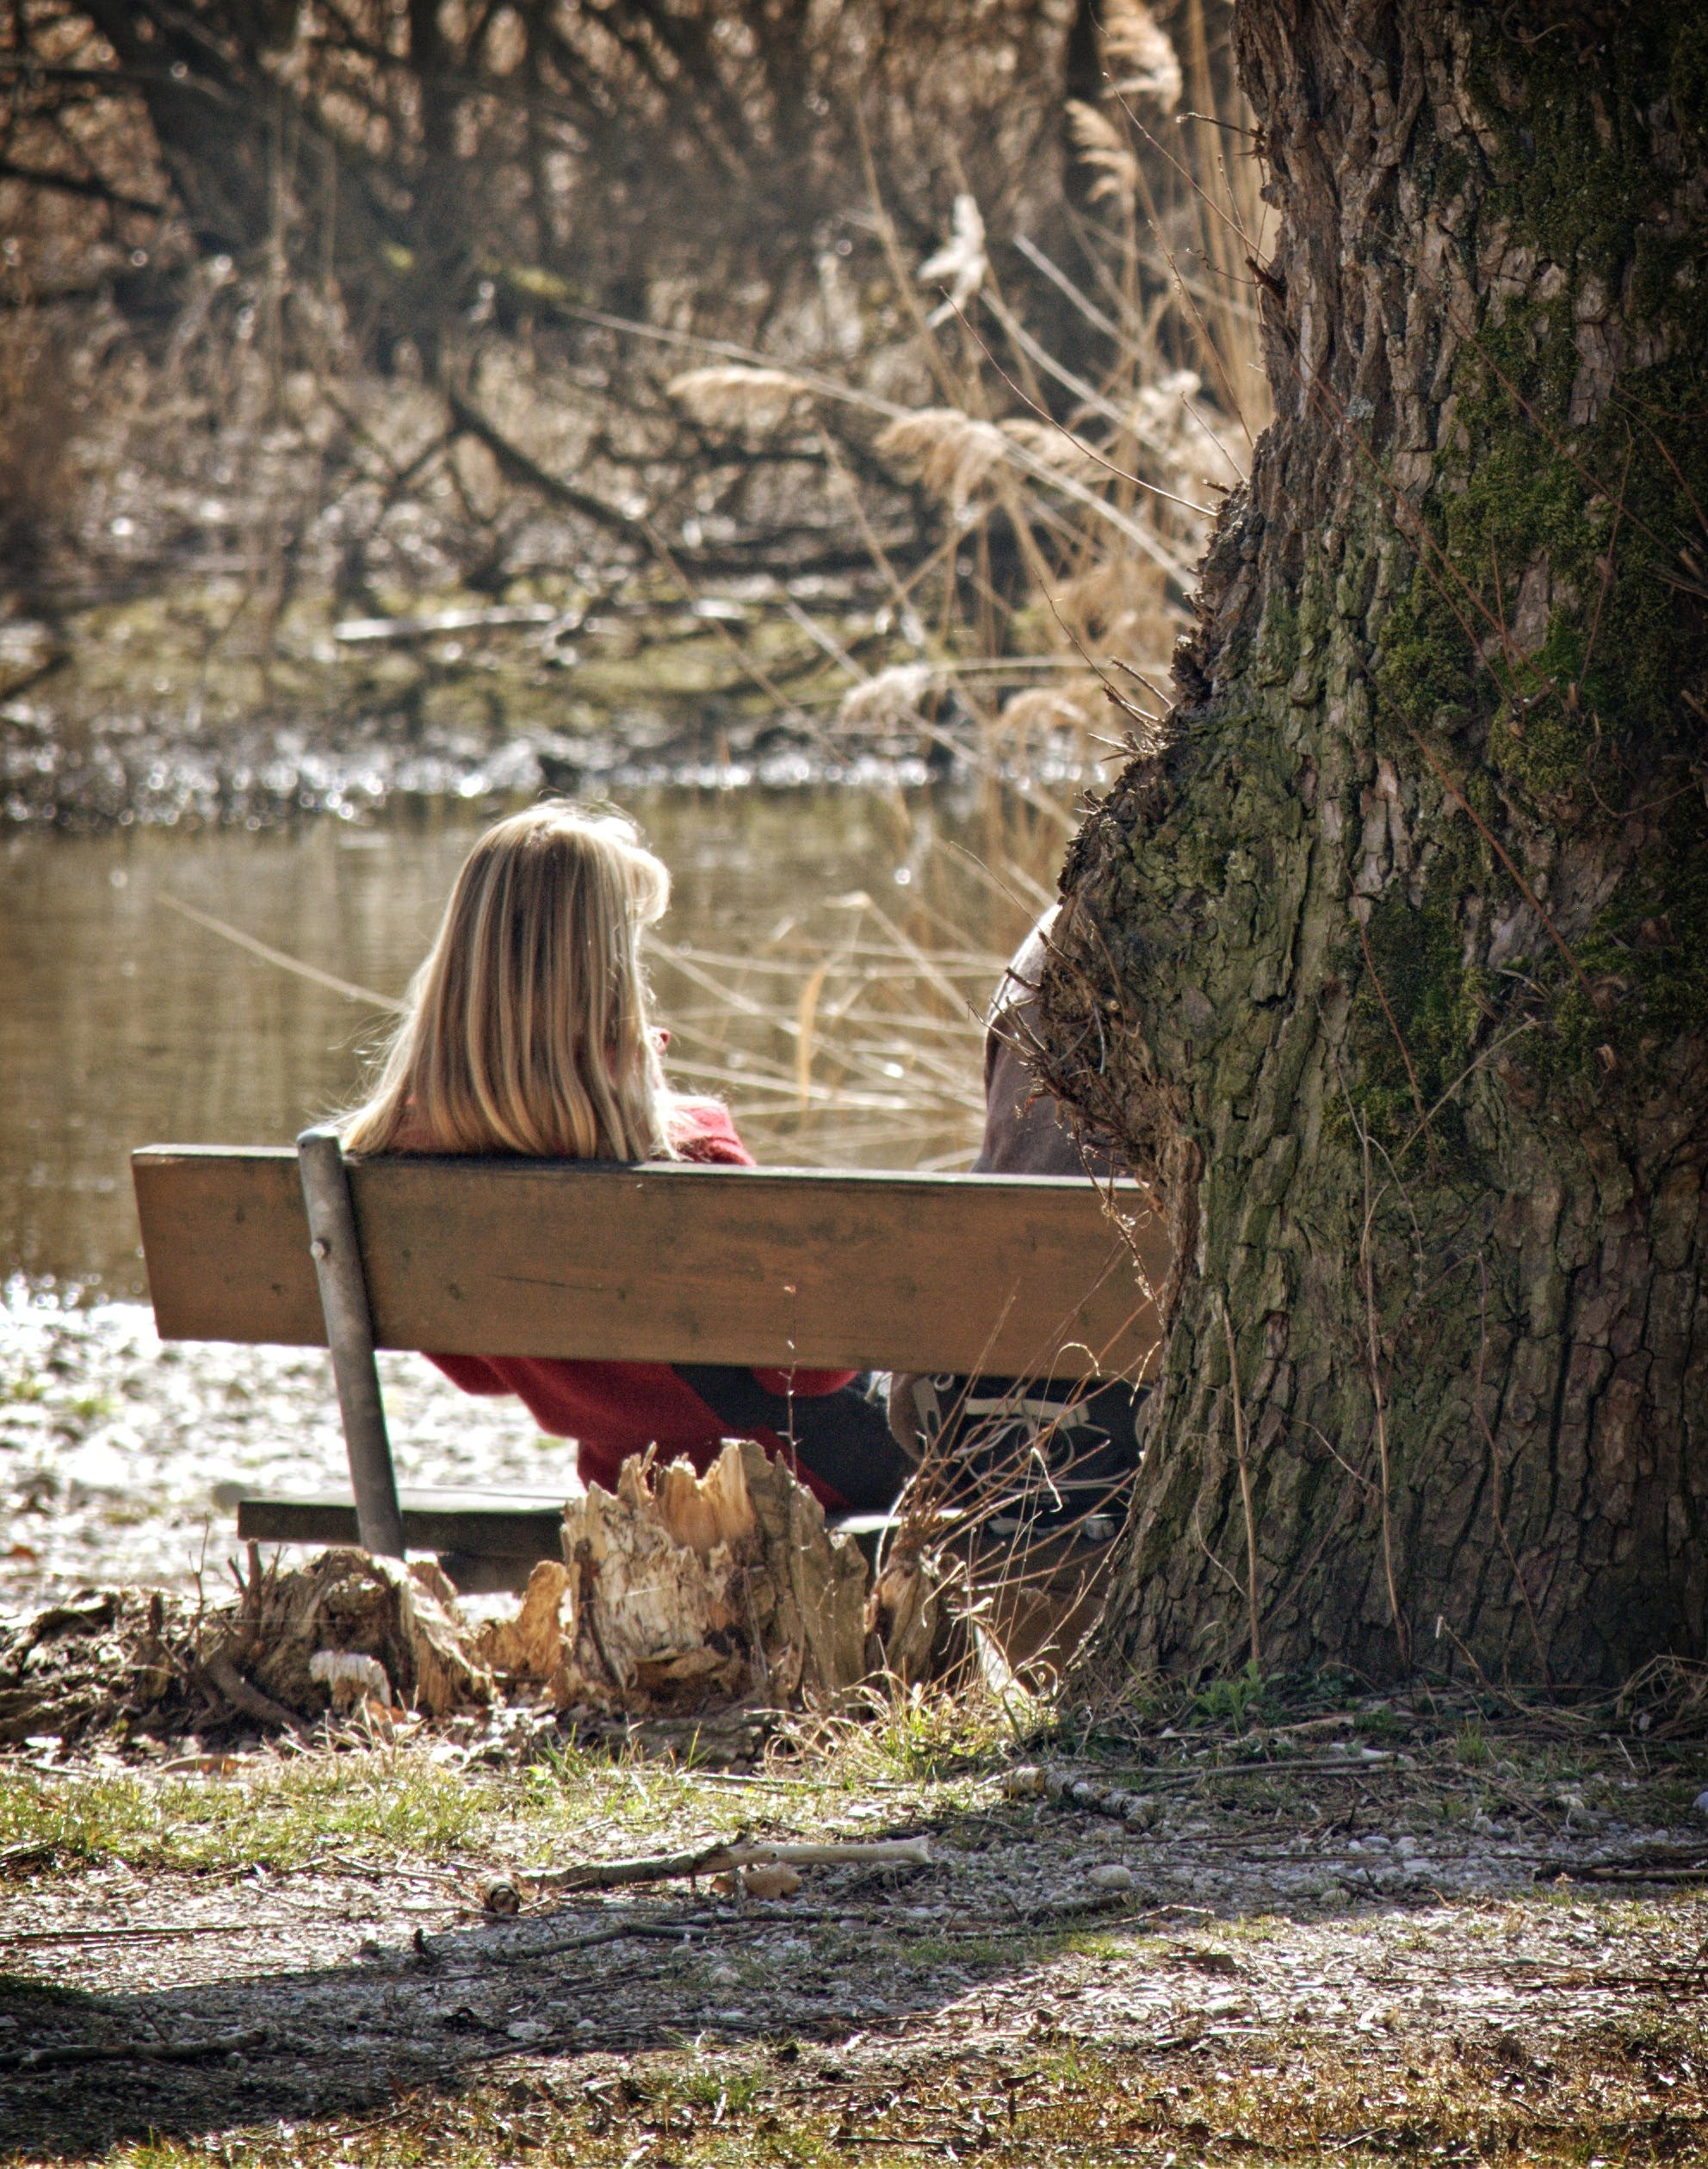 Free stock photo of wood, bench, person, woman